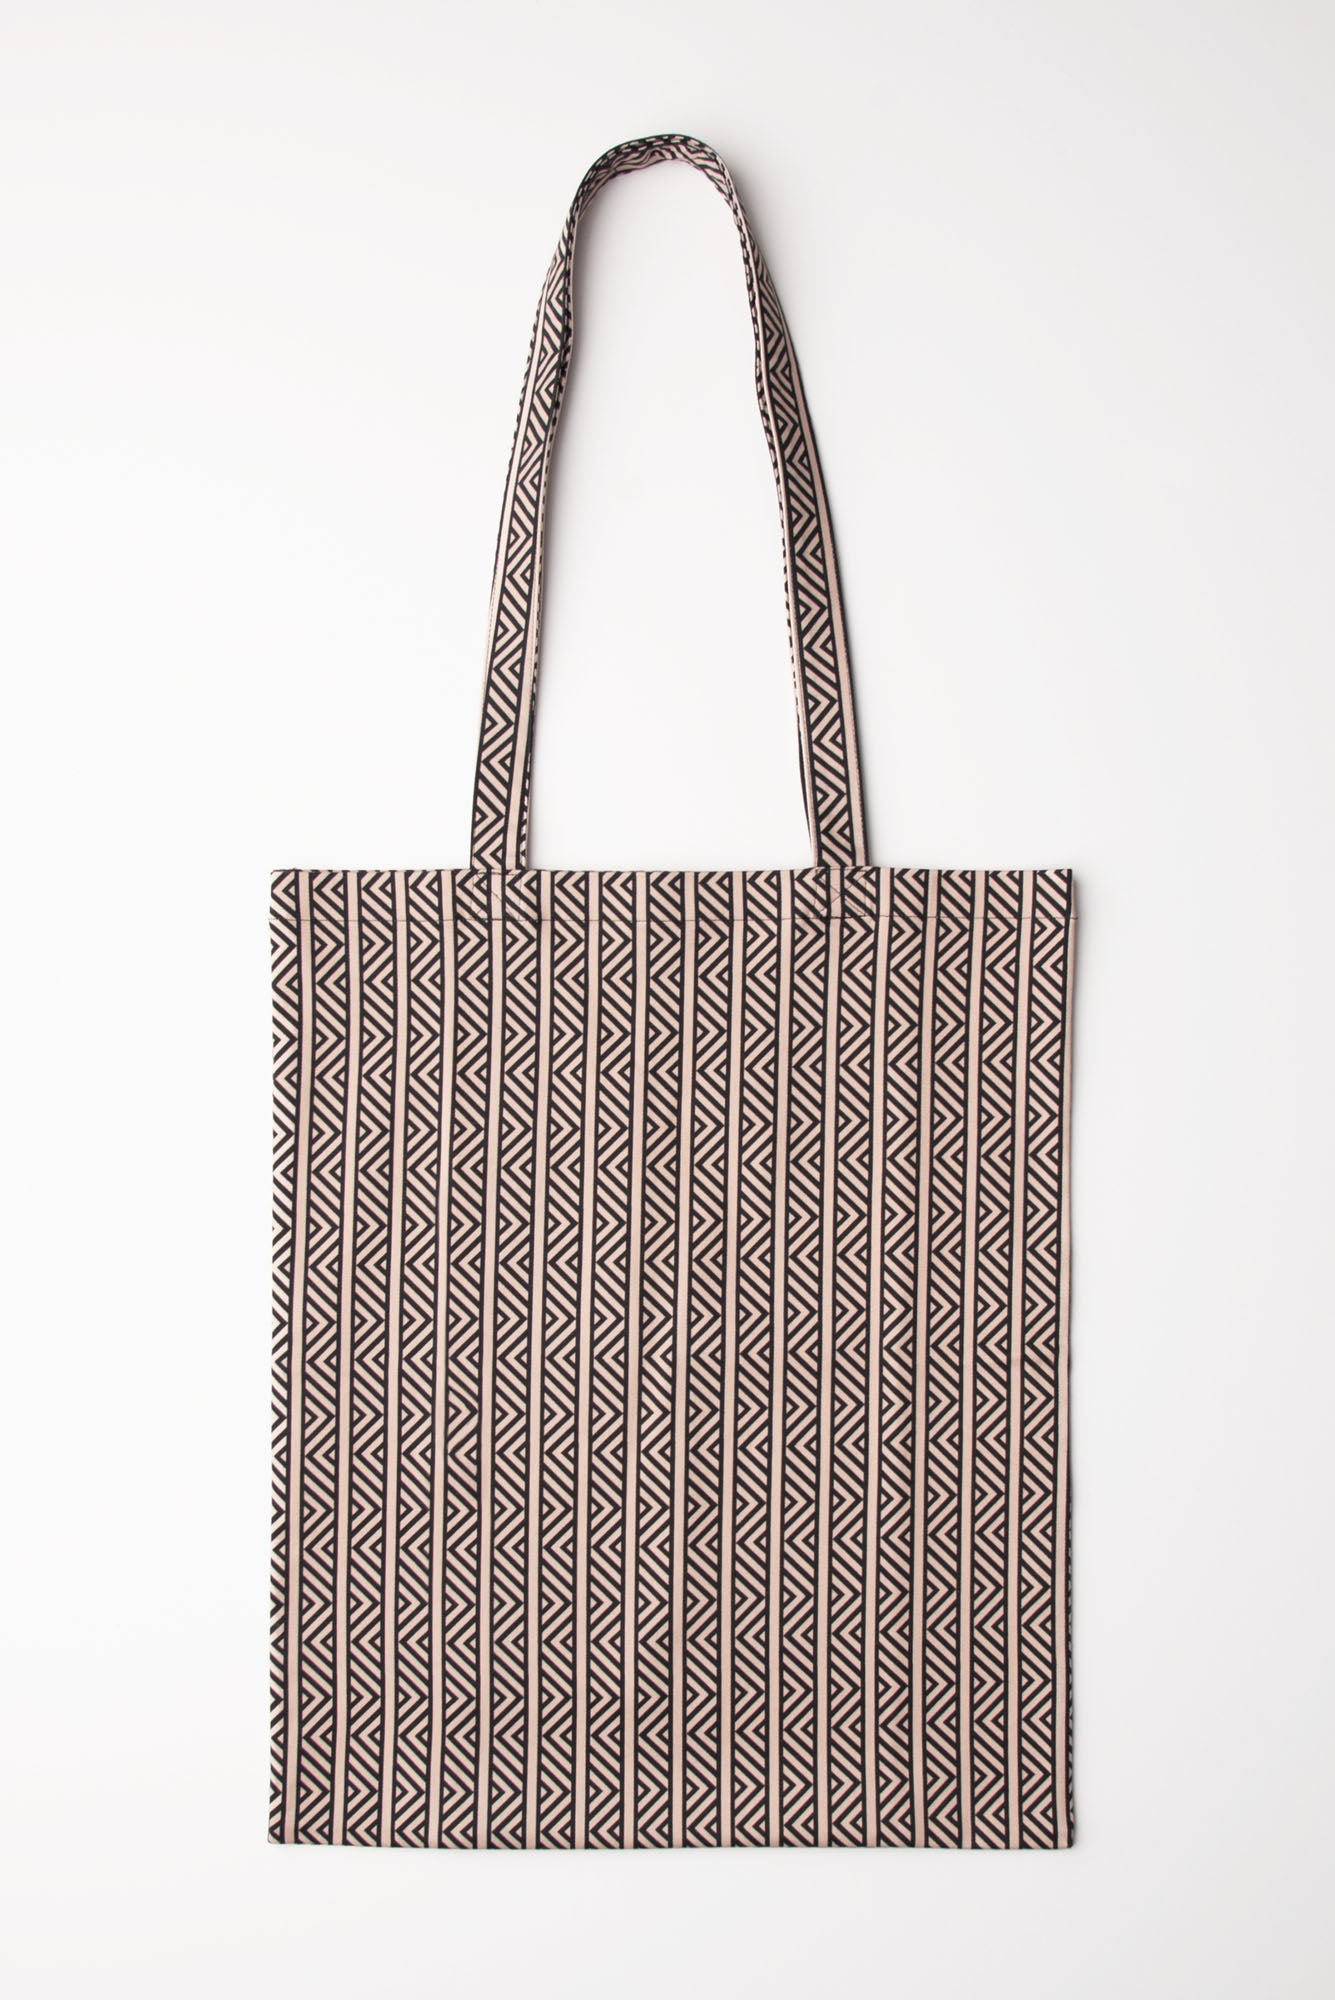 Tucker Tote | Black Chevron